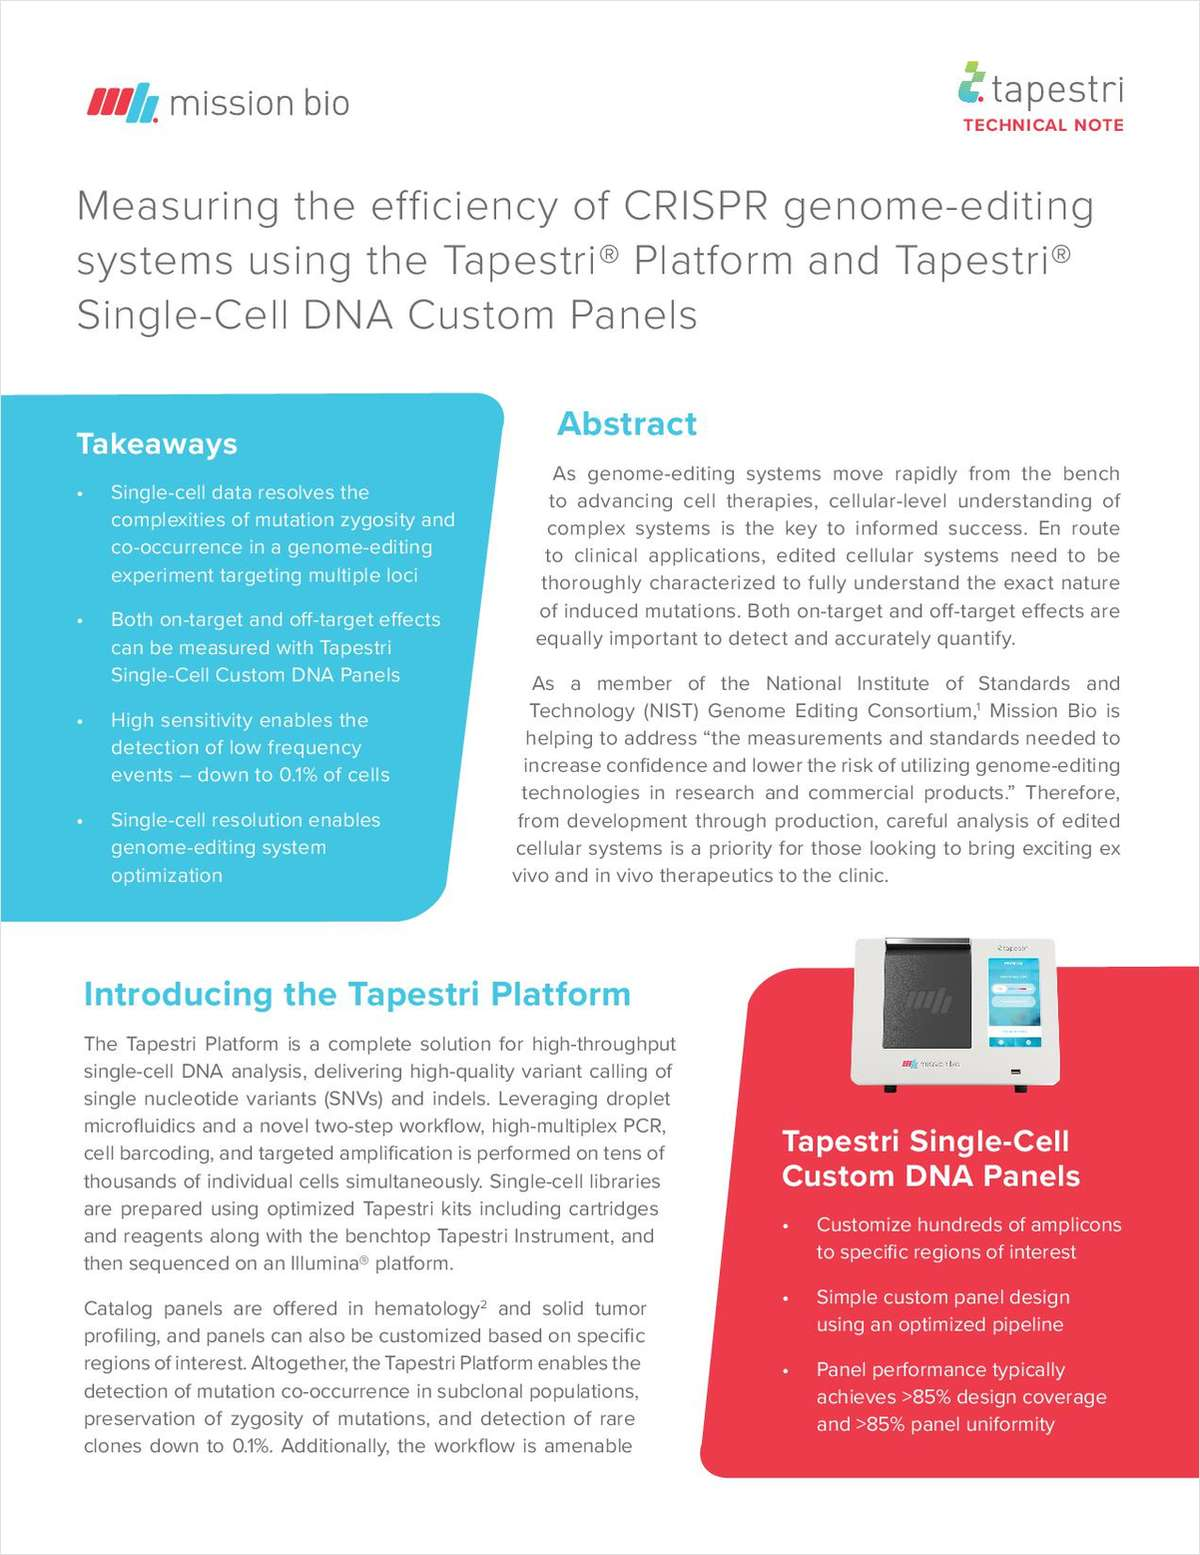 Measuring the Efficiency of CRISPR Genome Editing Systems Using the Tapestri Platform and Tapestri Single-Cell DNA Custom Panels